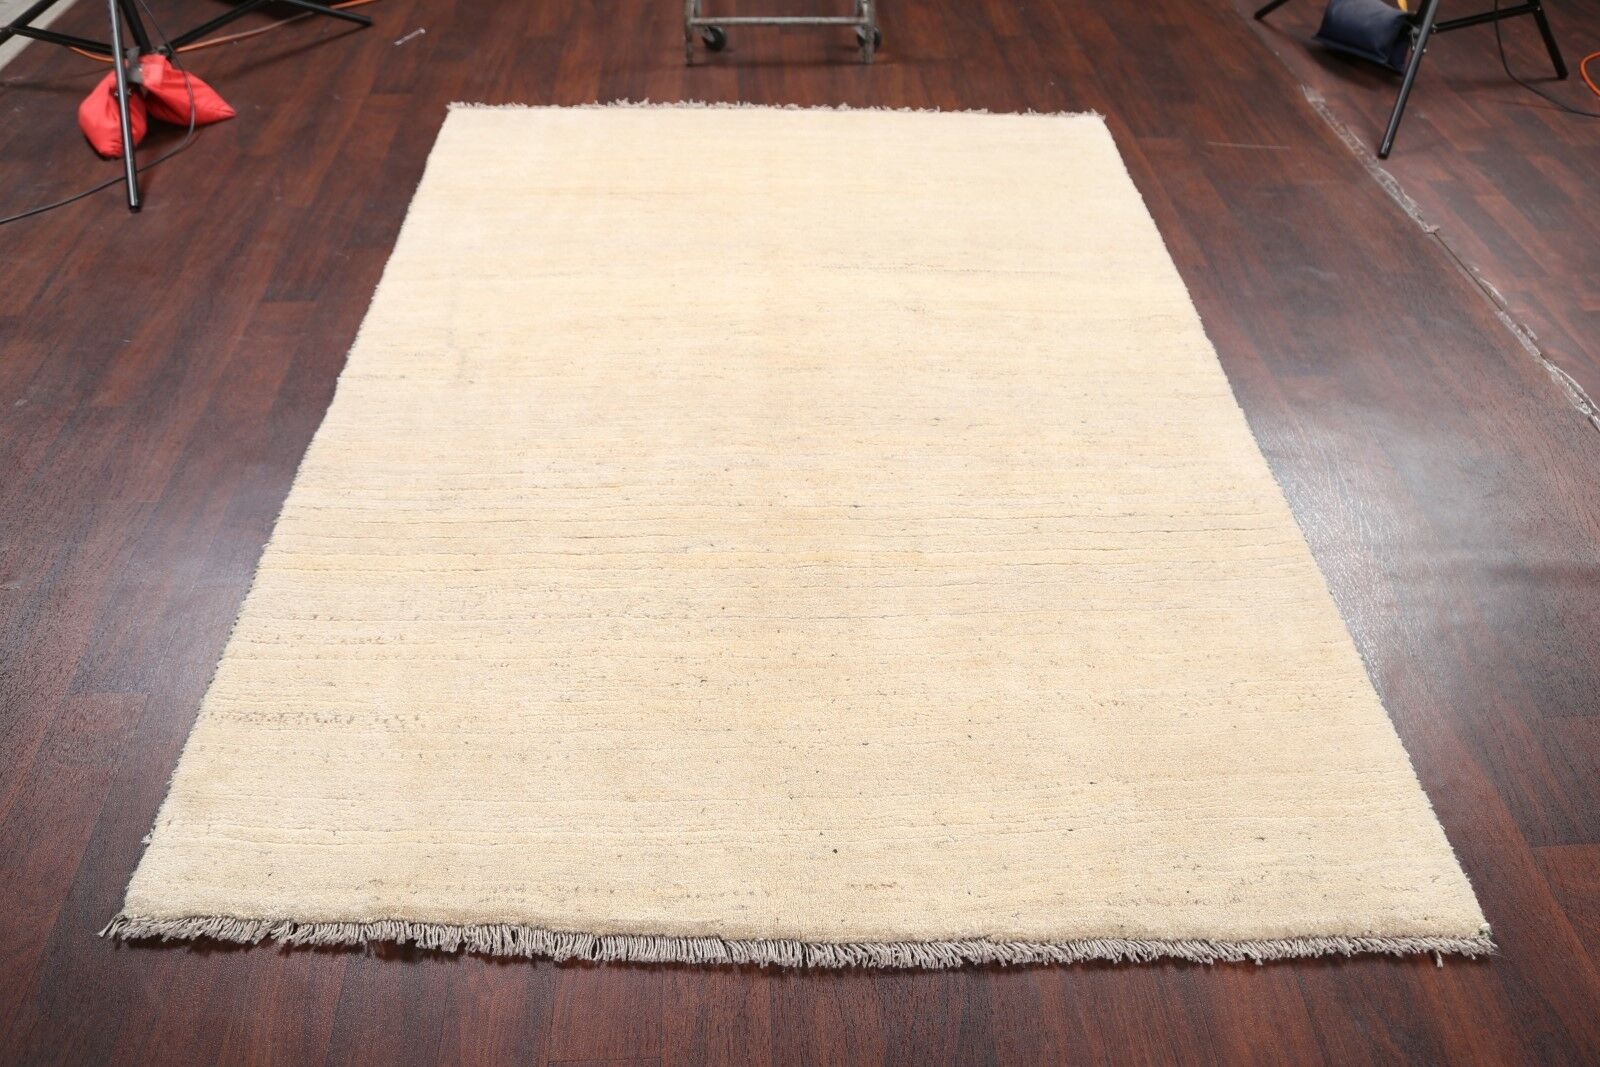 One-of-a-Kind Traditional Qashqai Gabbeh Shiraz Persian Hand-Knotted 5'6